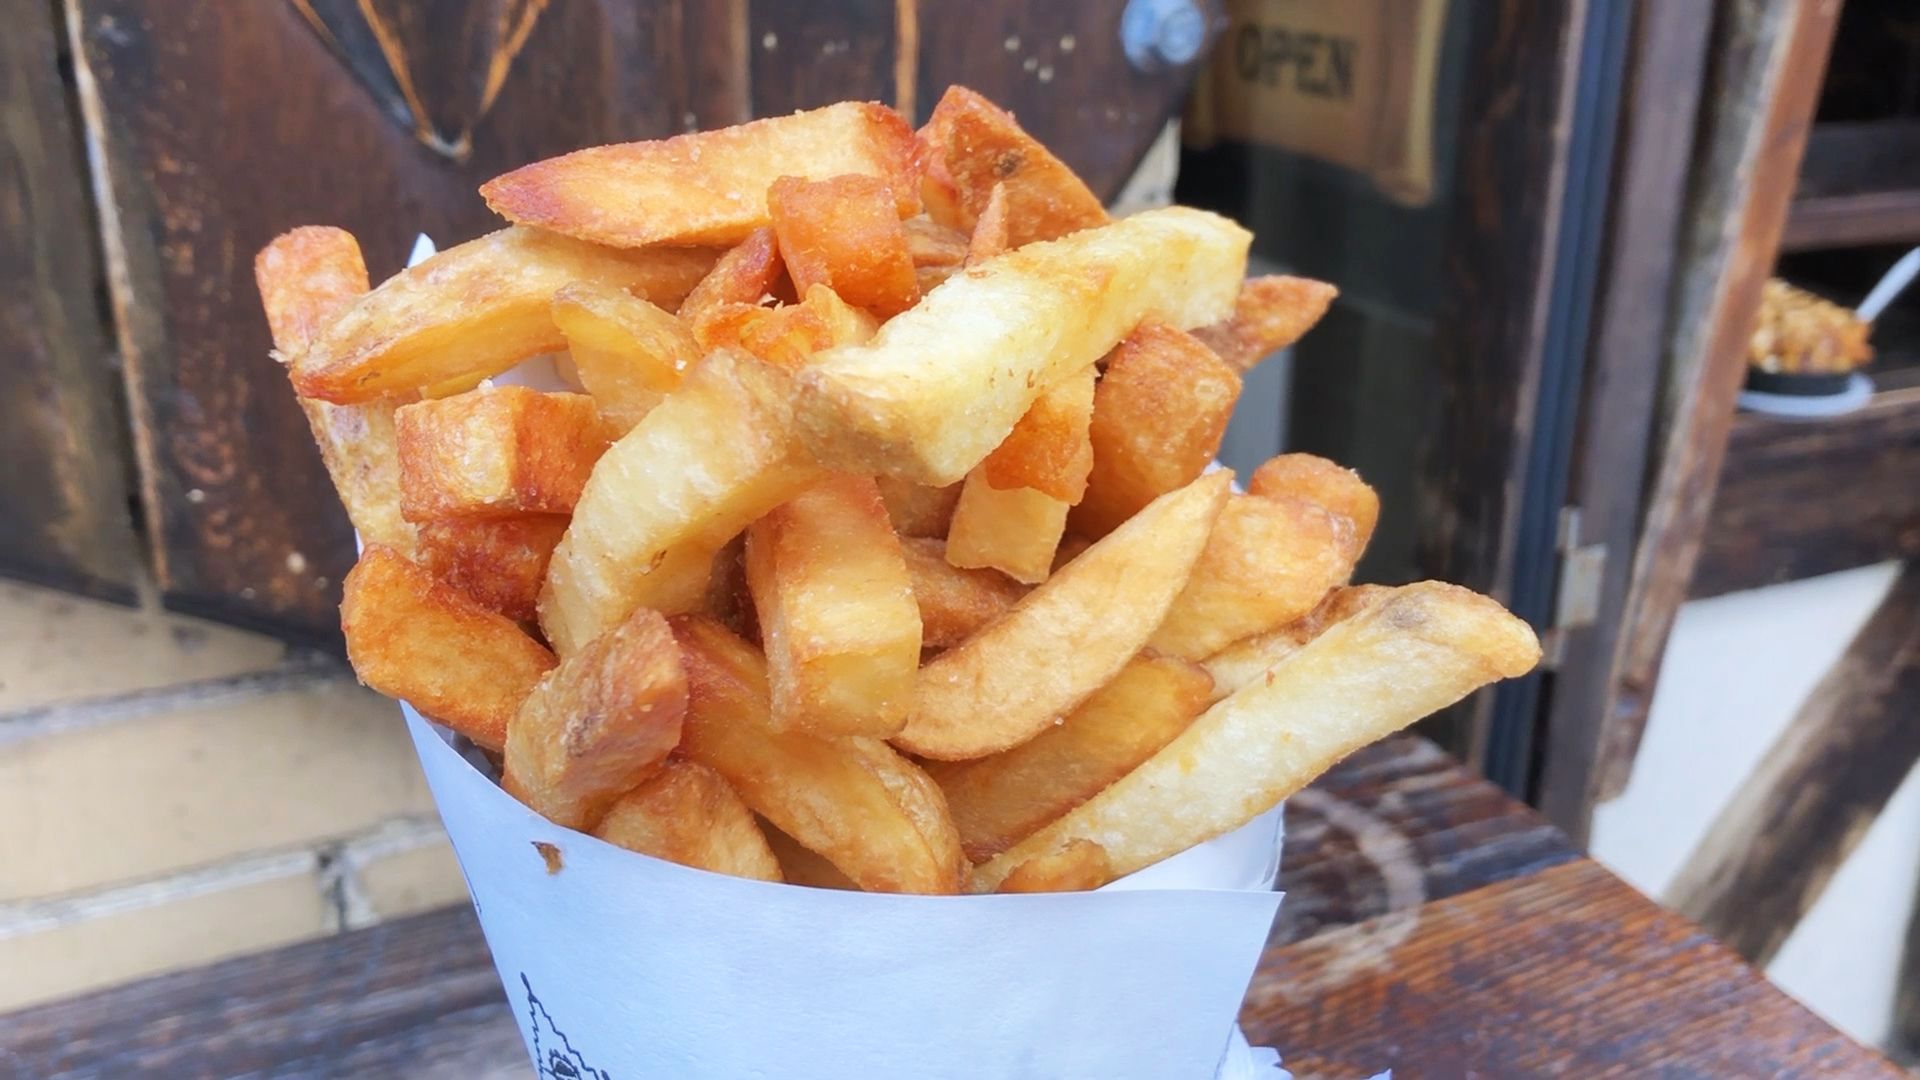 This Restaurant Makes 2 Tons Of Fries Every Week